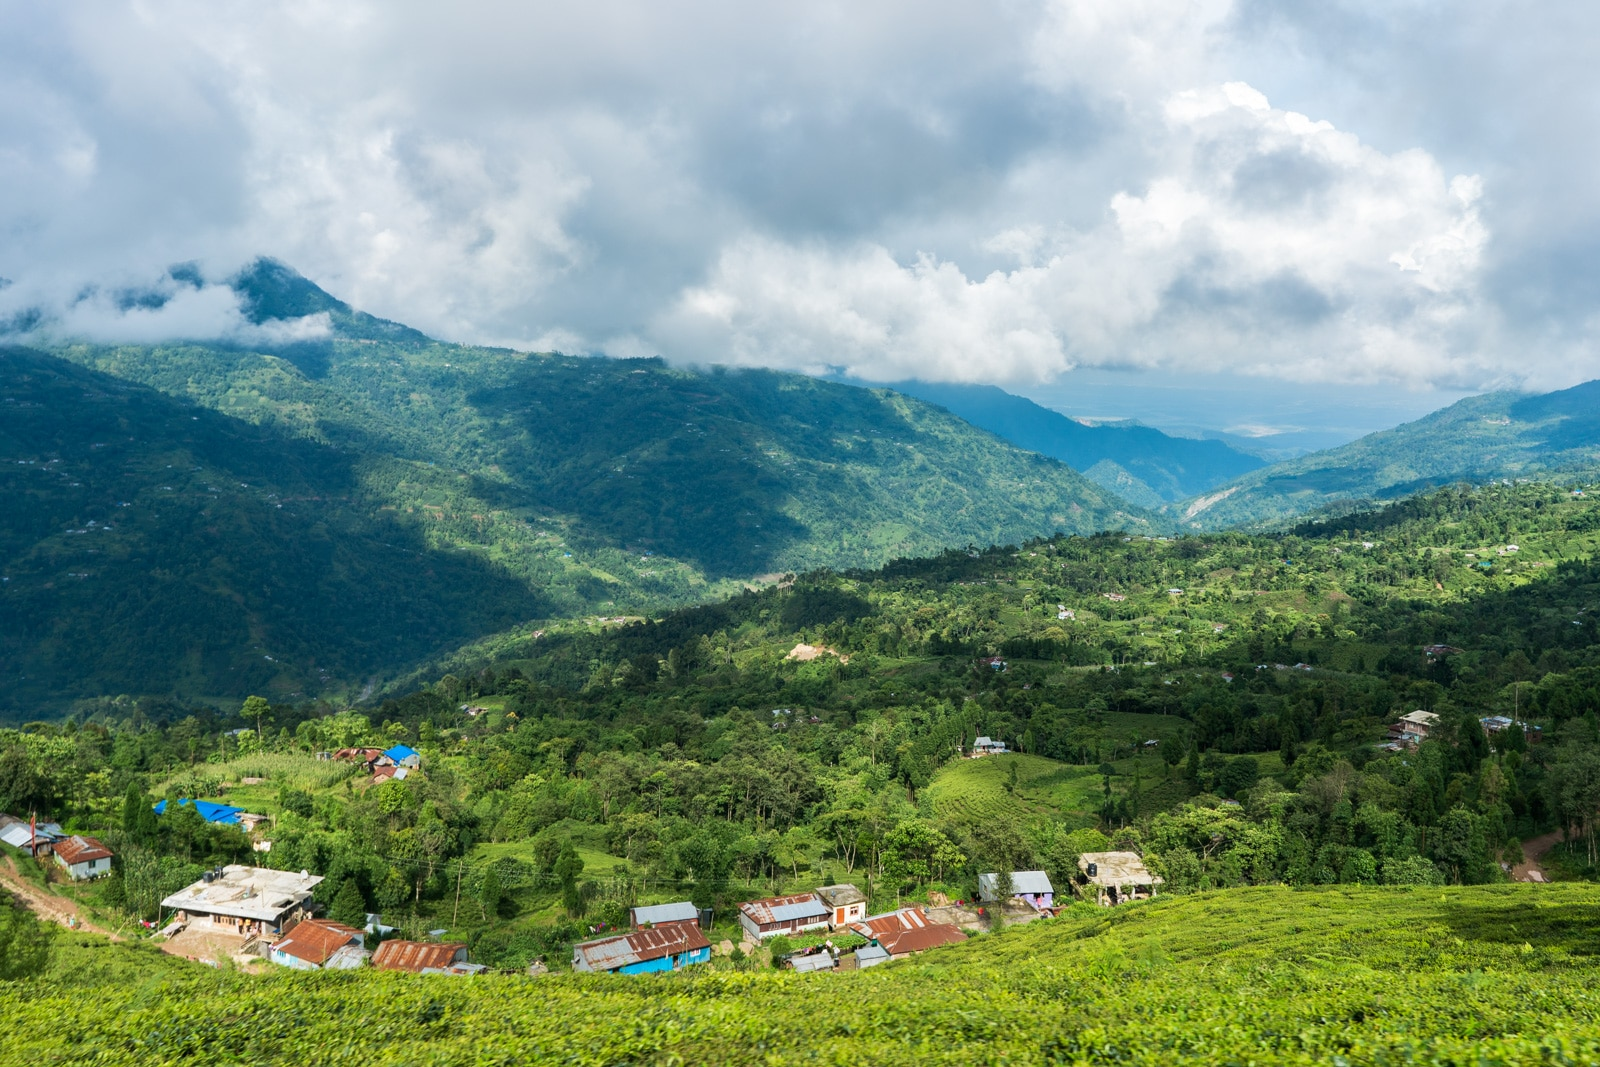 What it's like to travel in Nepal during monsoon - Epic views of mountains on the bus ride from Ilam to Kathmandu - Lost With Purpose travel blog